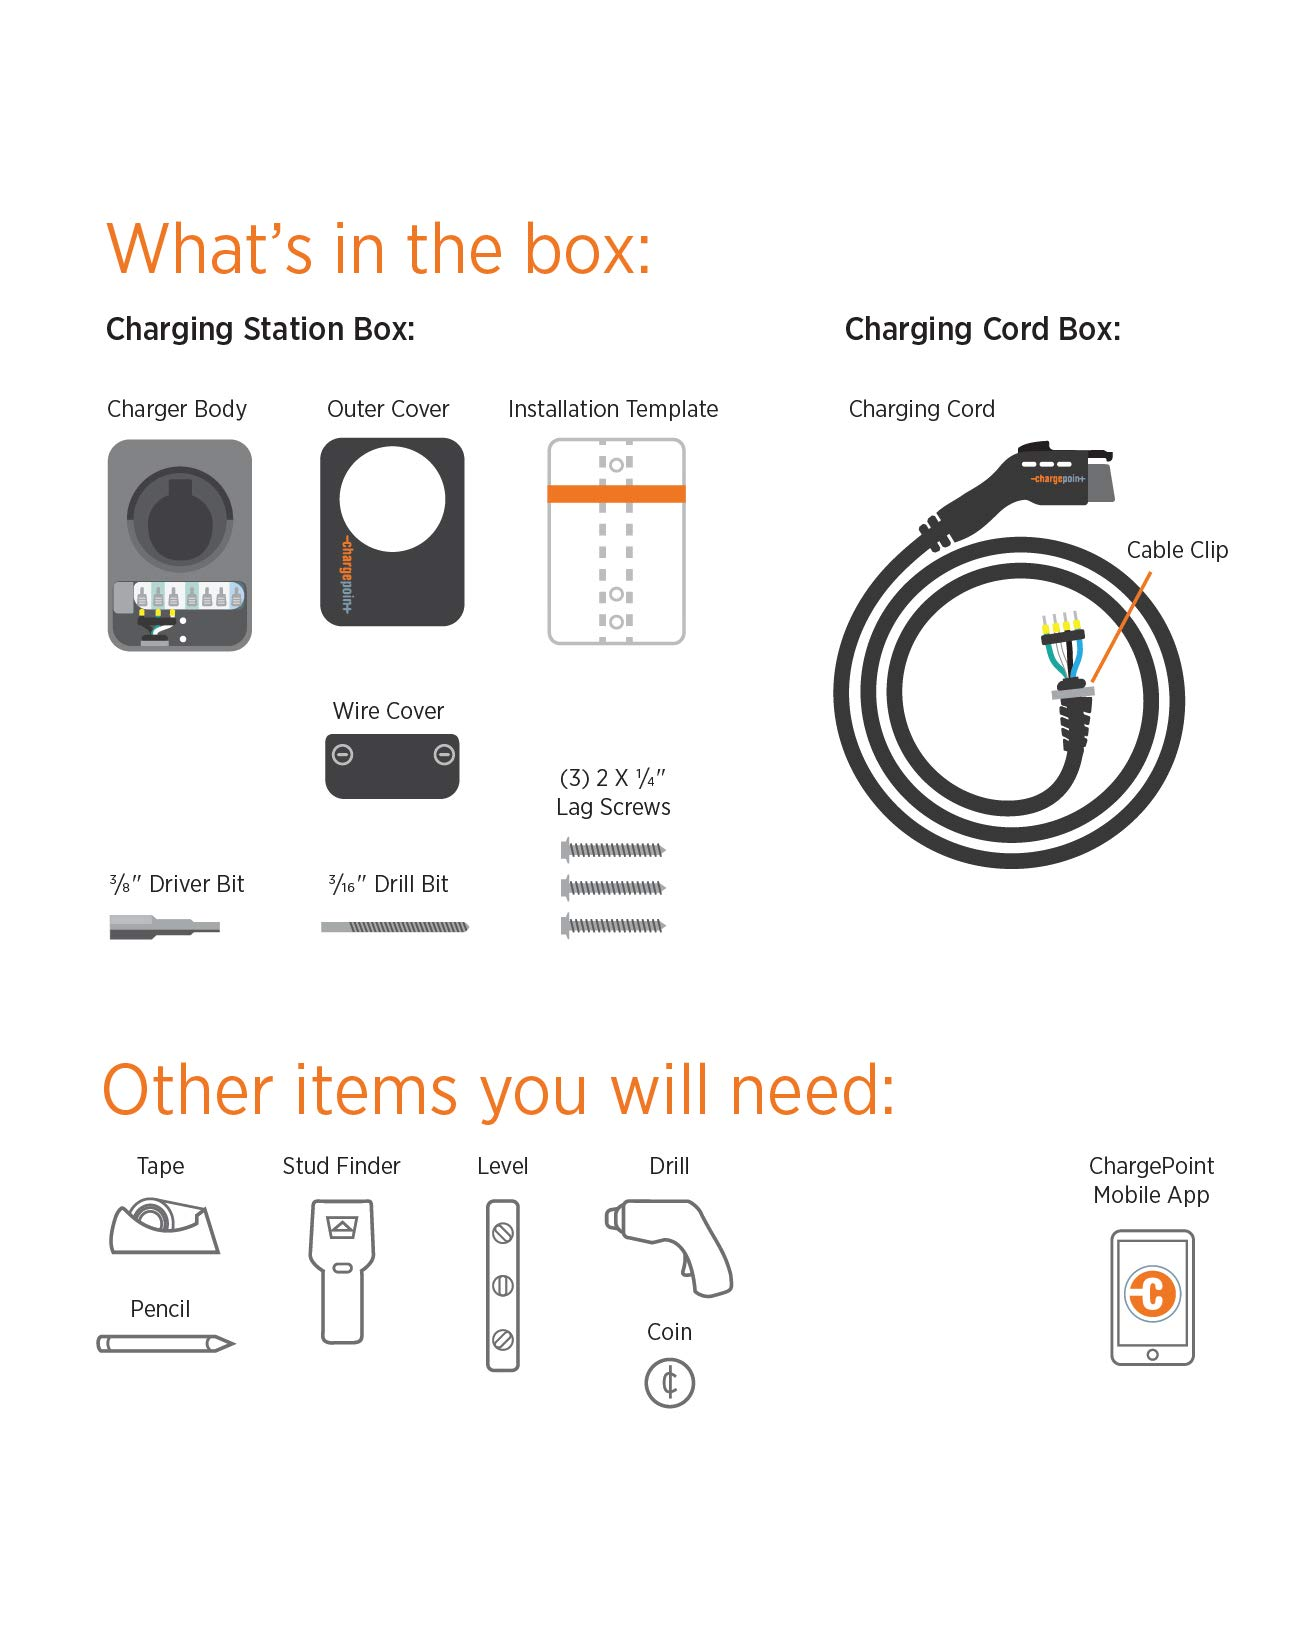 ChargePoint Home WiFi Enabled Electric Vehicle (EV) Charger - Level 2 240V EVSE, 32A Electric Car Charger for All EVs, UL Listed, ENERGY STAR Certified, Hardwired (no outlet needed), 18 Ft Cable by ChargePoint (Image #9)